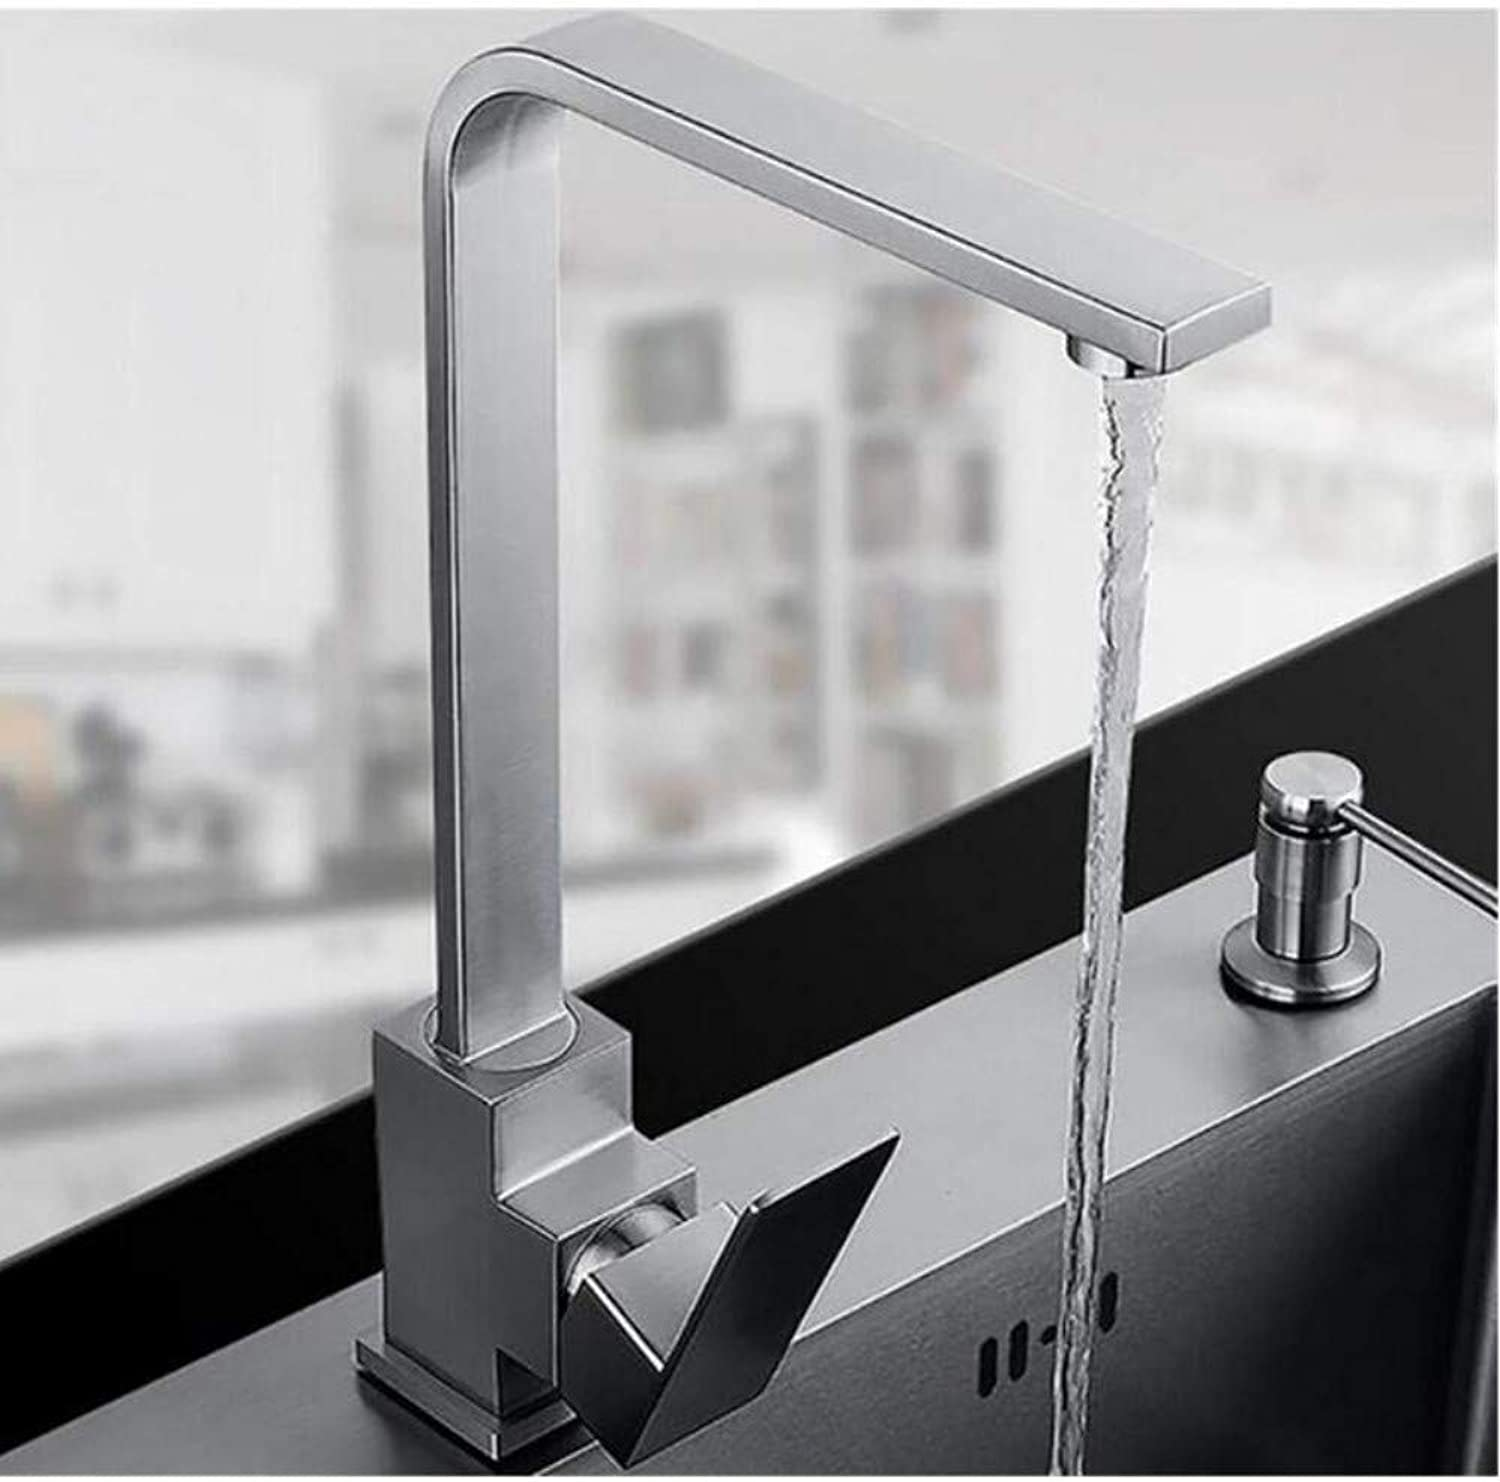 Chrome-Plated Adjustable Temperature-Sensitive Led Faucetfaucet Mixer Sink Faucet Surface Brushed Water Tap 360 Degree redation